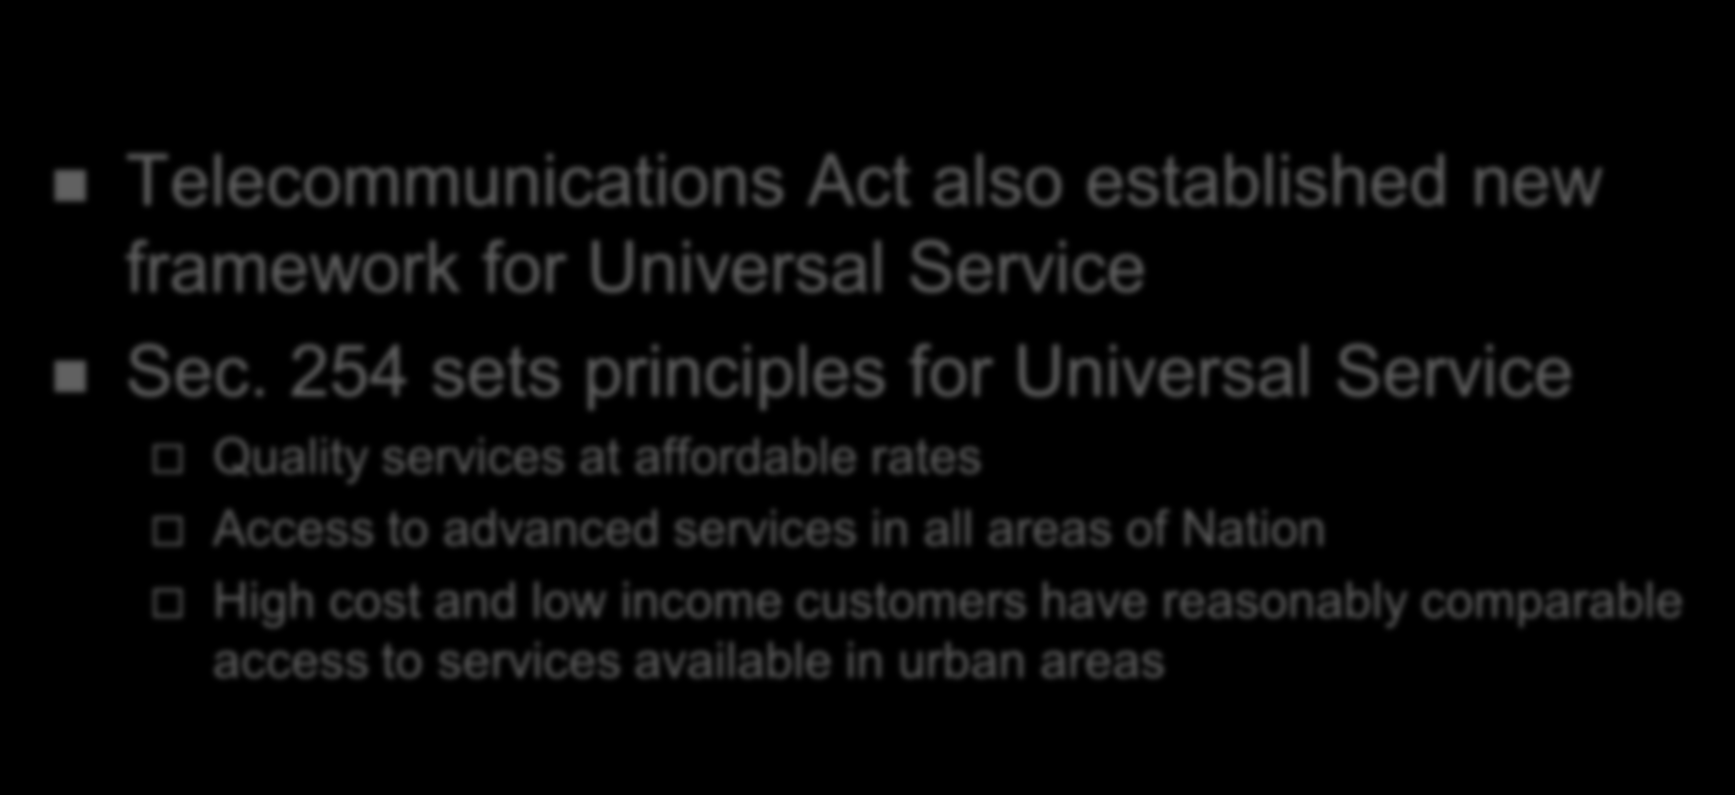 Universal Service in Telecom Act Telecommunications Act also established new framework for Universal Service Sec.